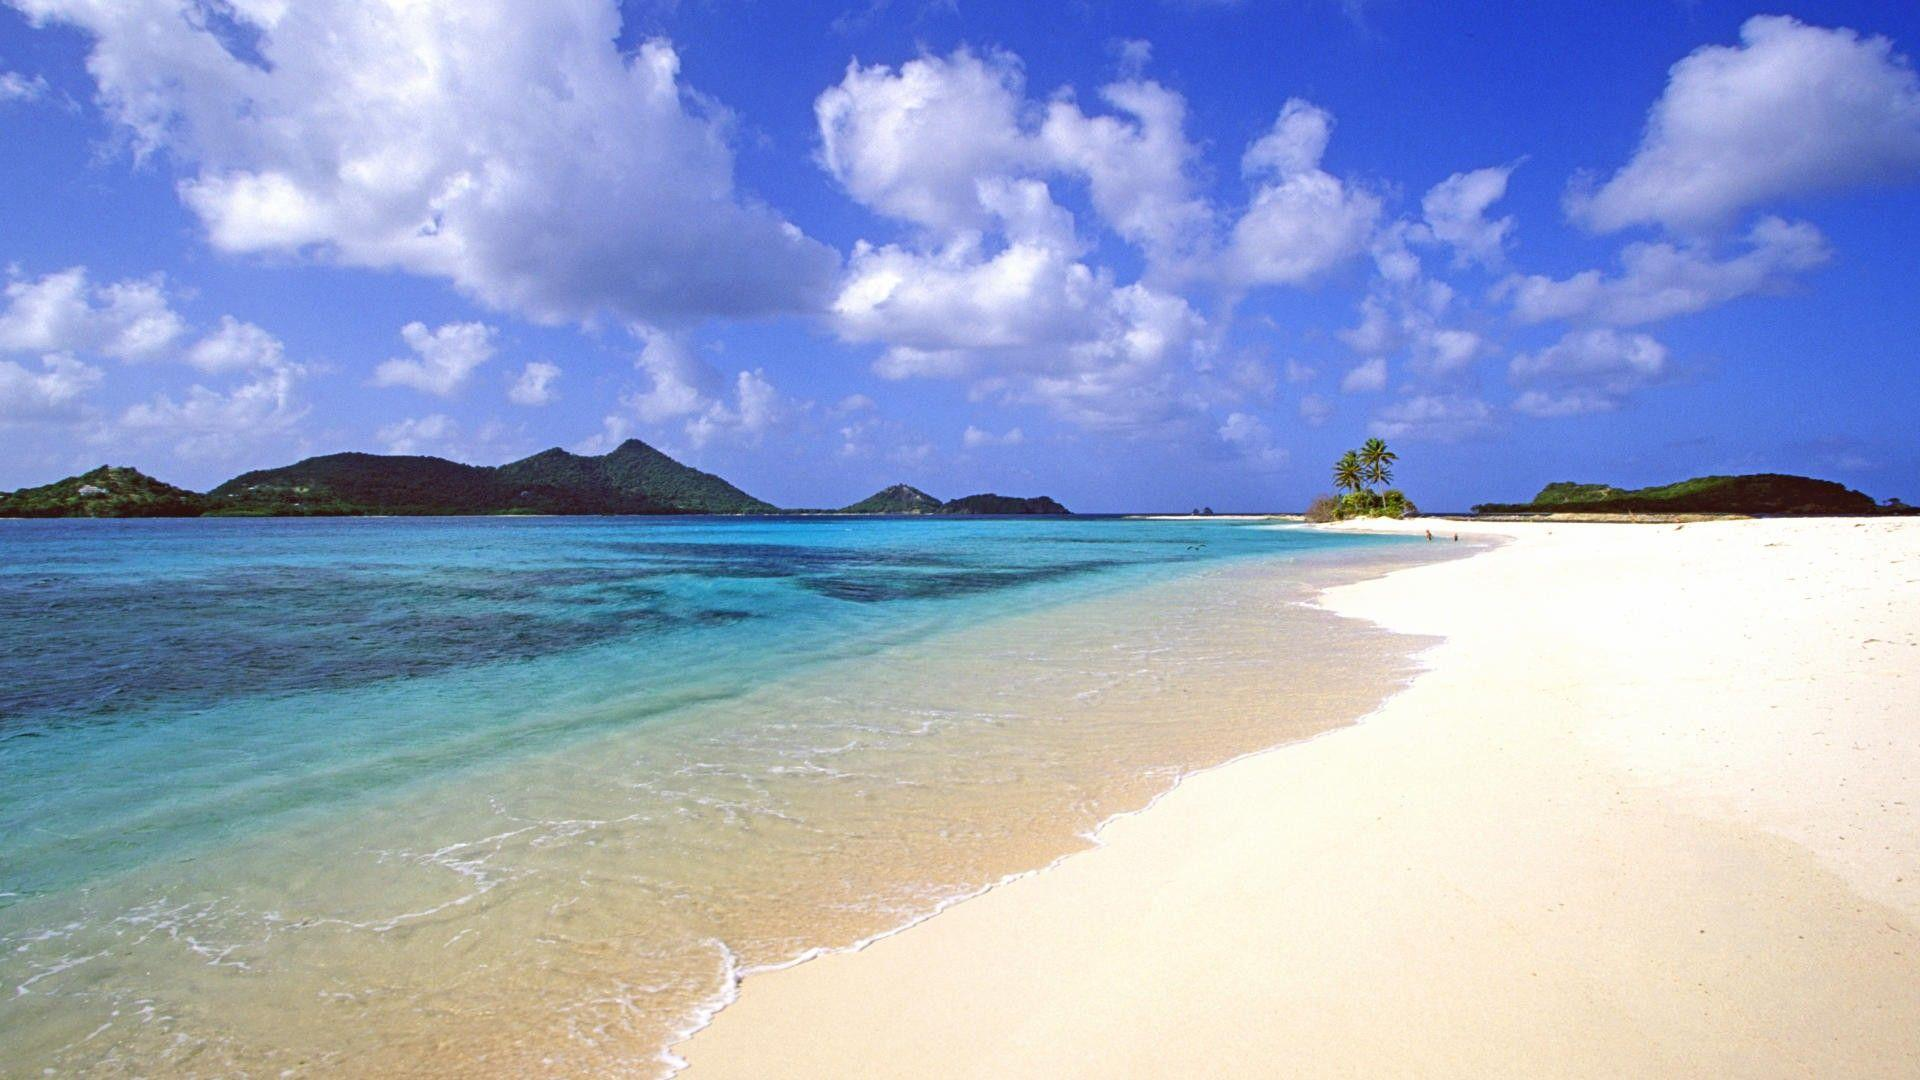 HD Calm Exotic Beach Wallpaper | Download Free - 54796